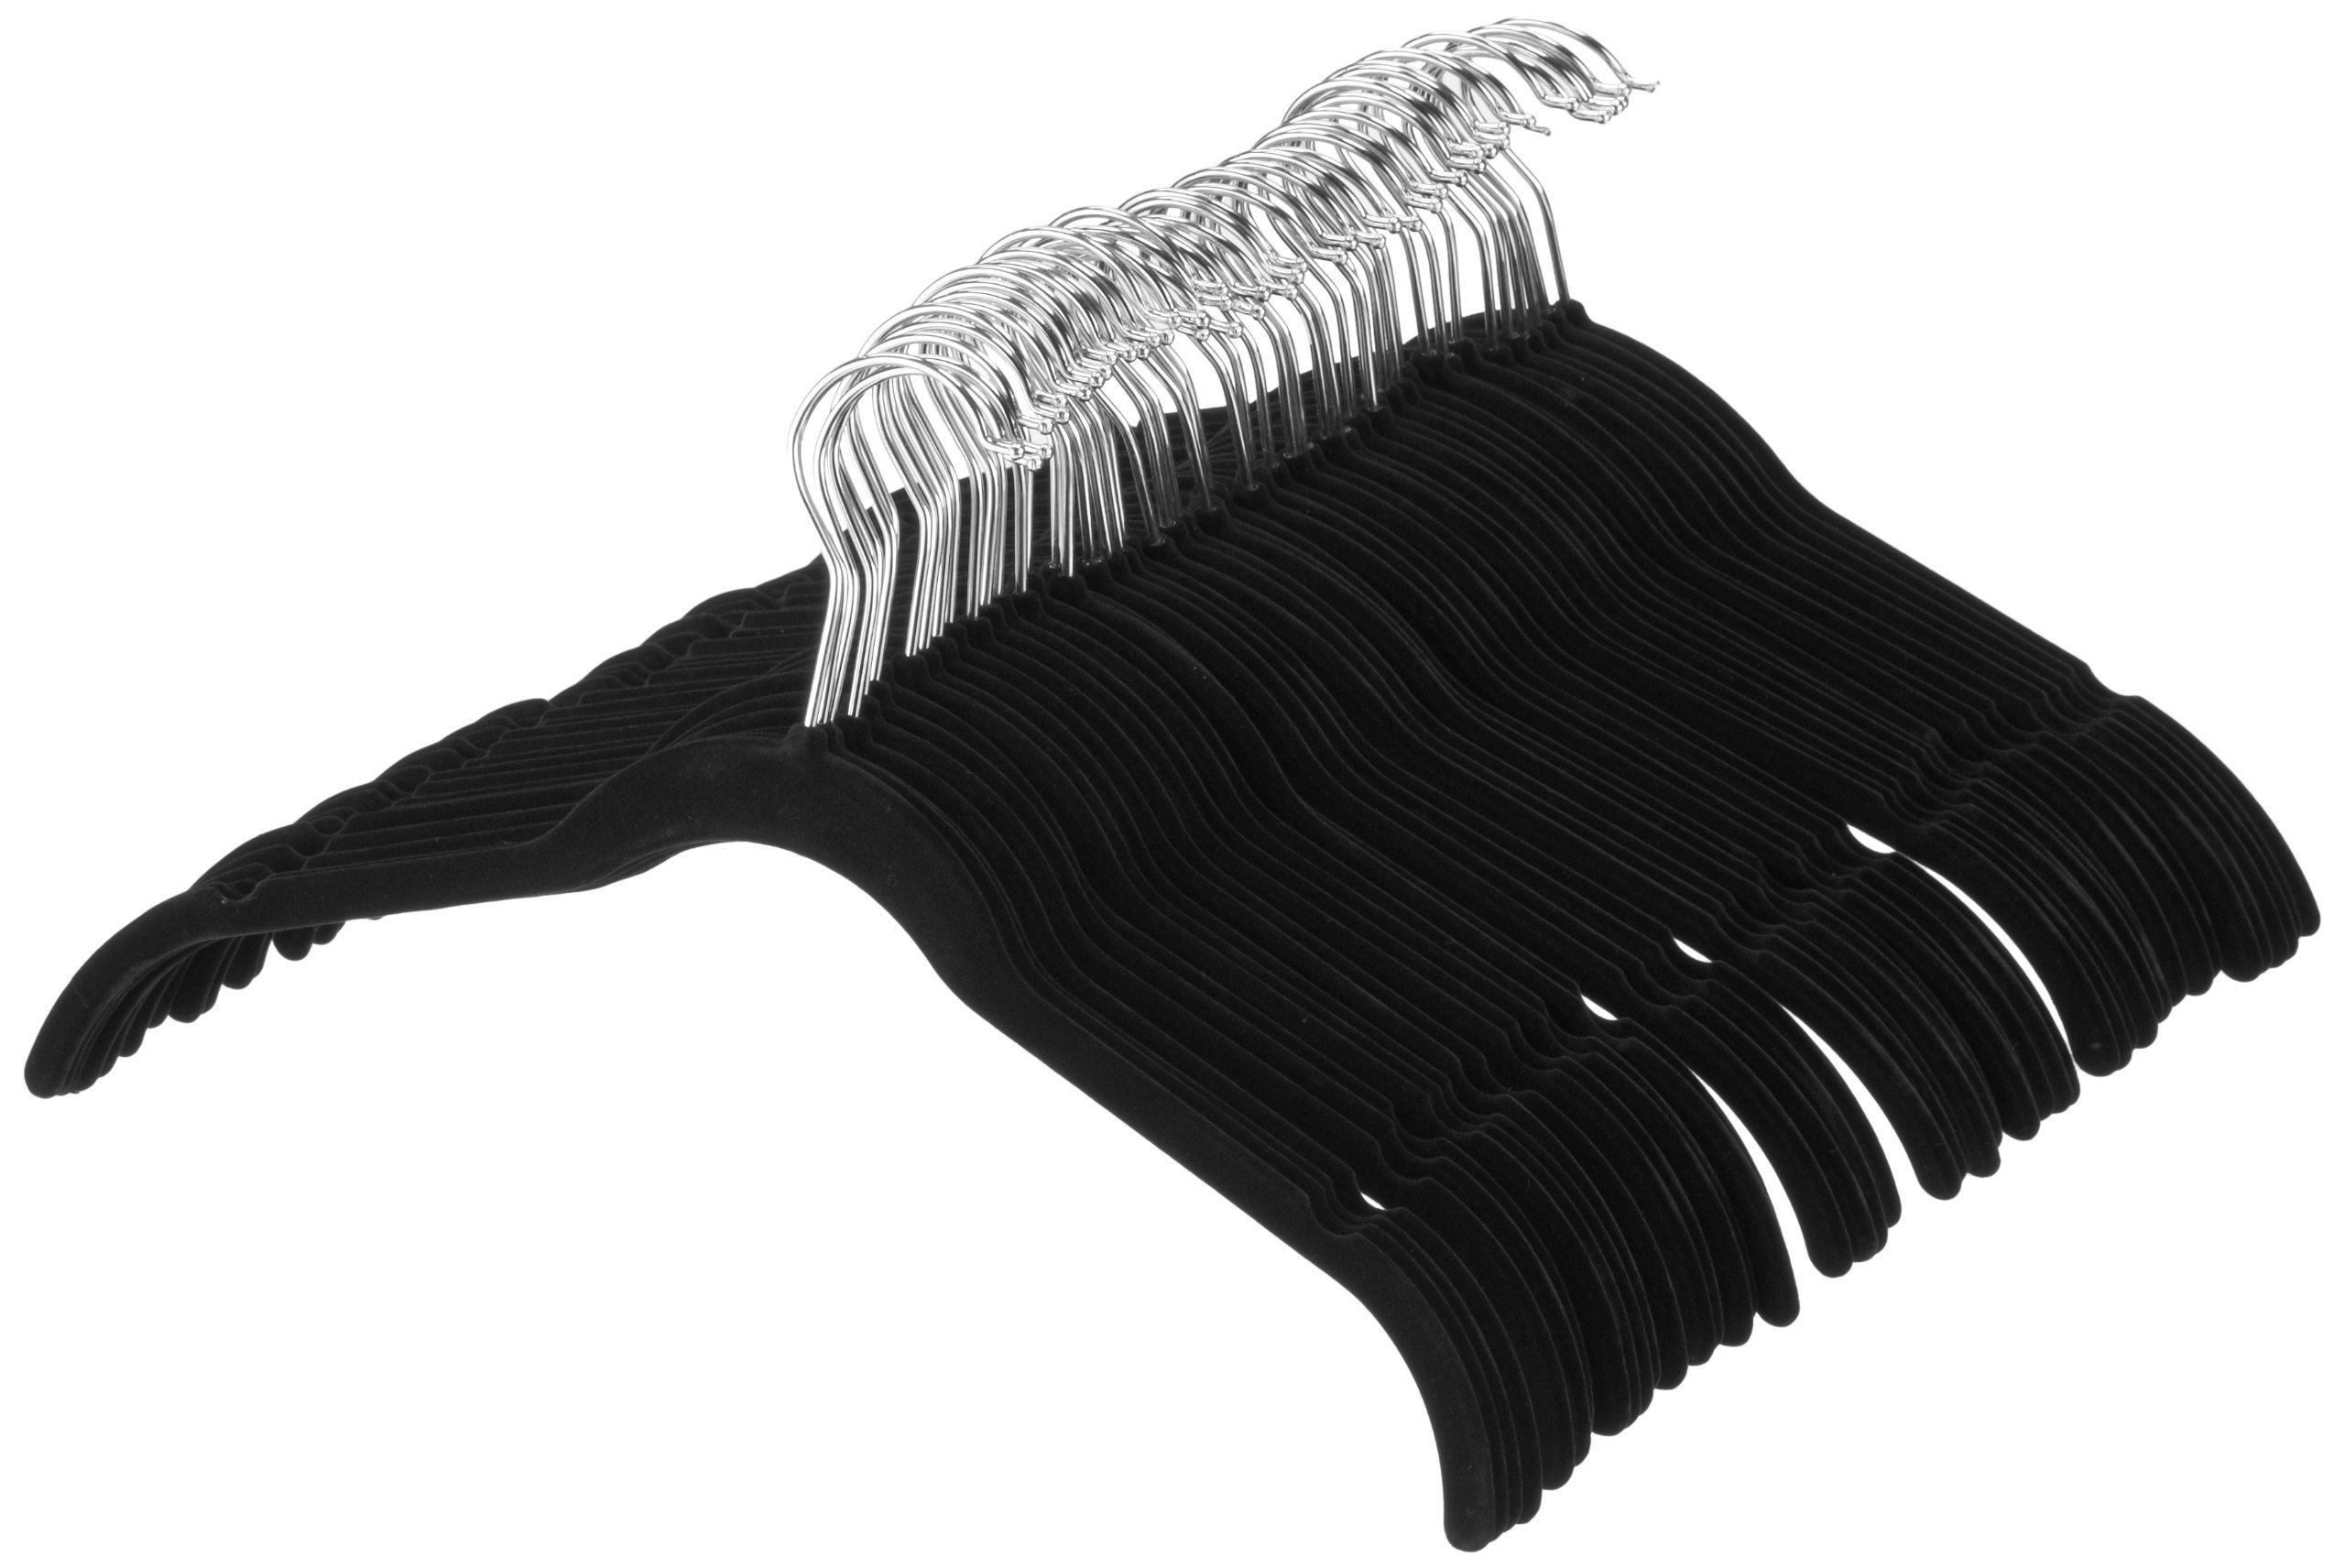 AmazonBasics Velvet Shirt Dress Clothes Hangers, 100-Pack, Black by AmazonBasics